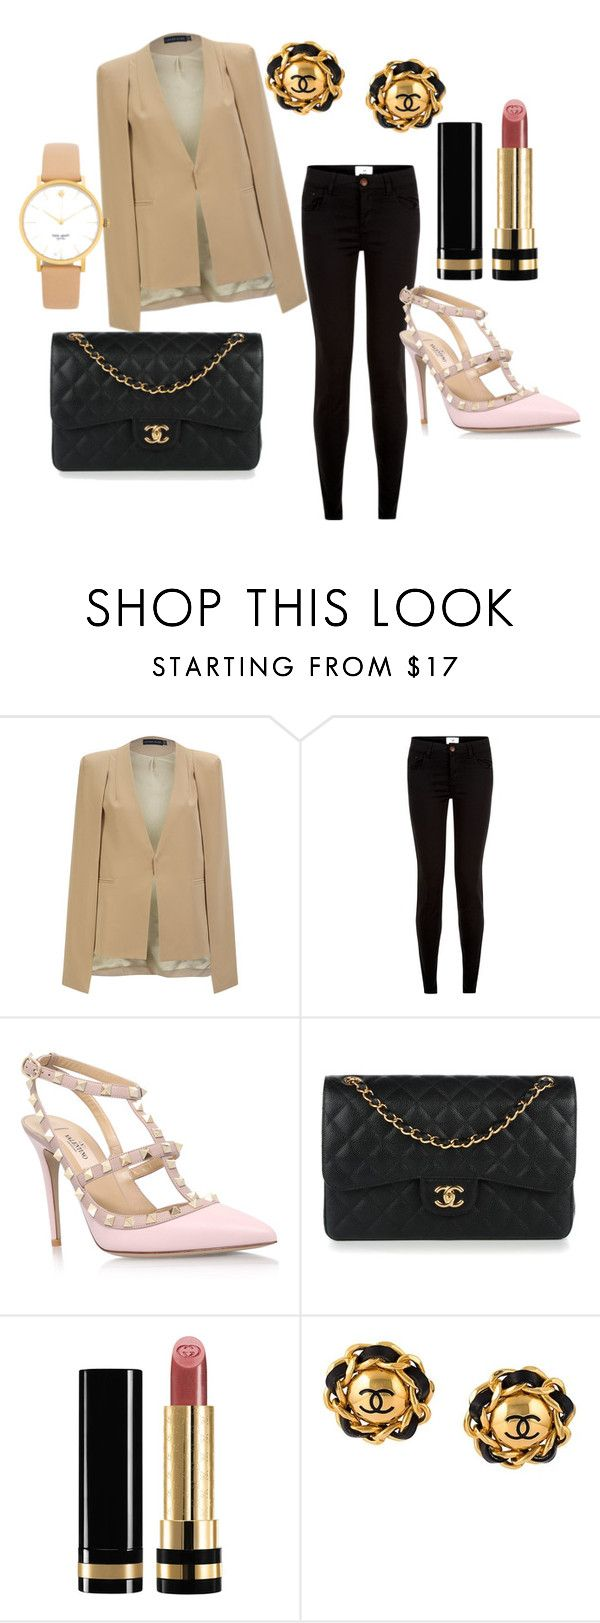 """""""Pretty in Nude"""" by stephparker1994 on Polyvore featuring Lavish Alice, New Look, Valentino, Chanel, Gucci, Kate Spade, chic, love and polyvorefashion"""